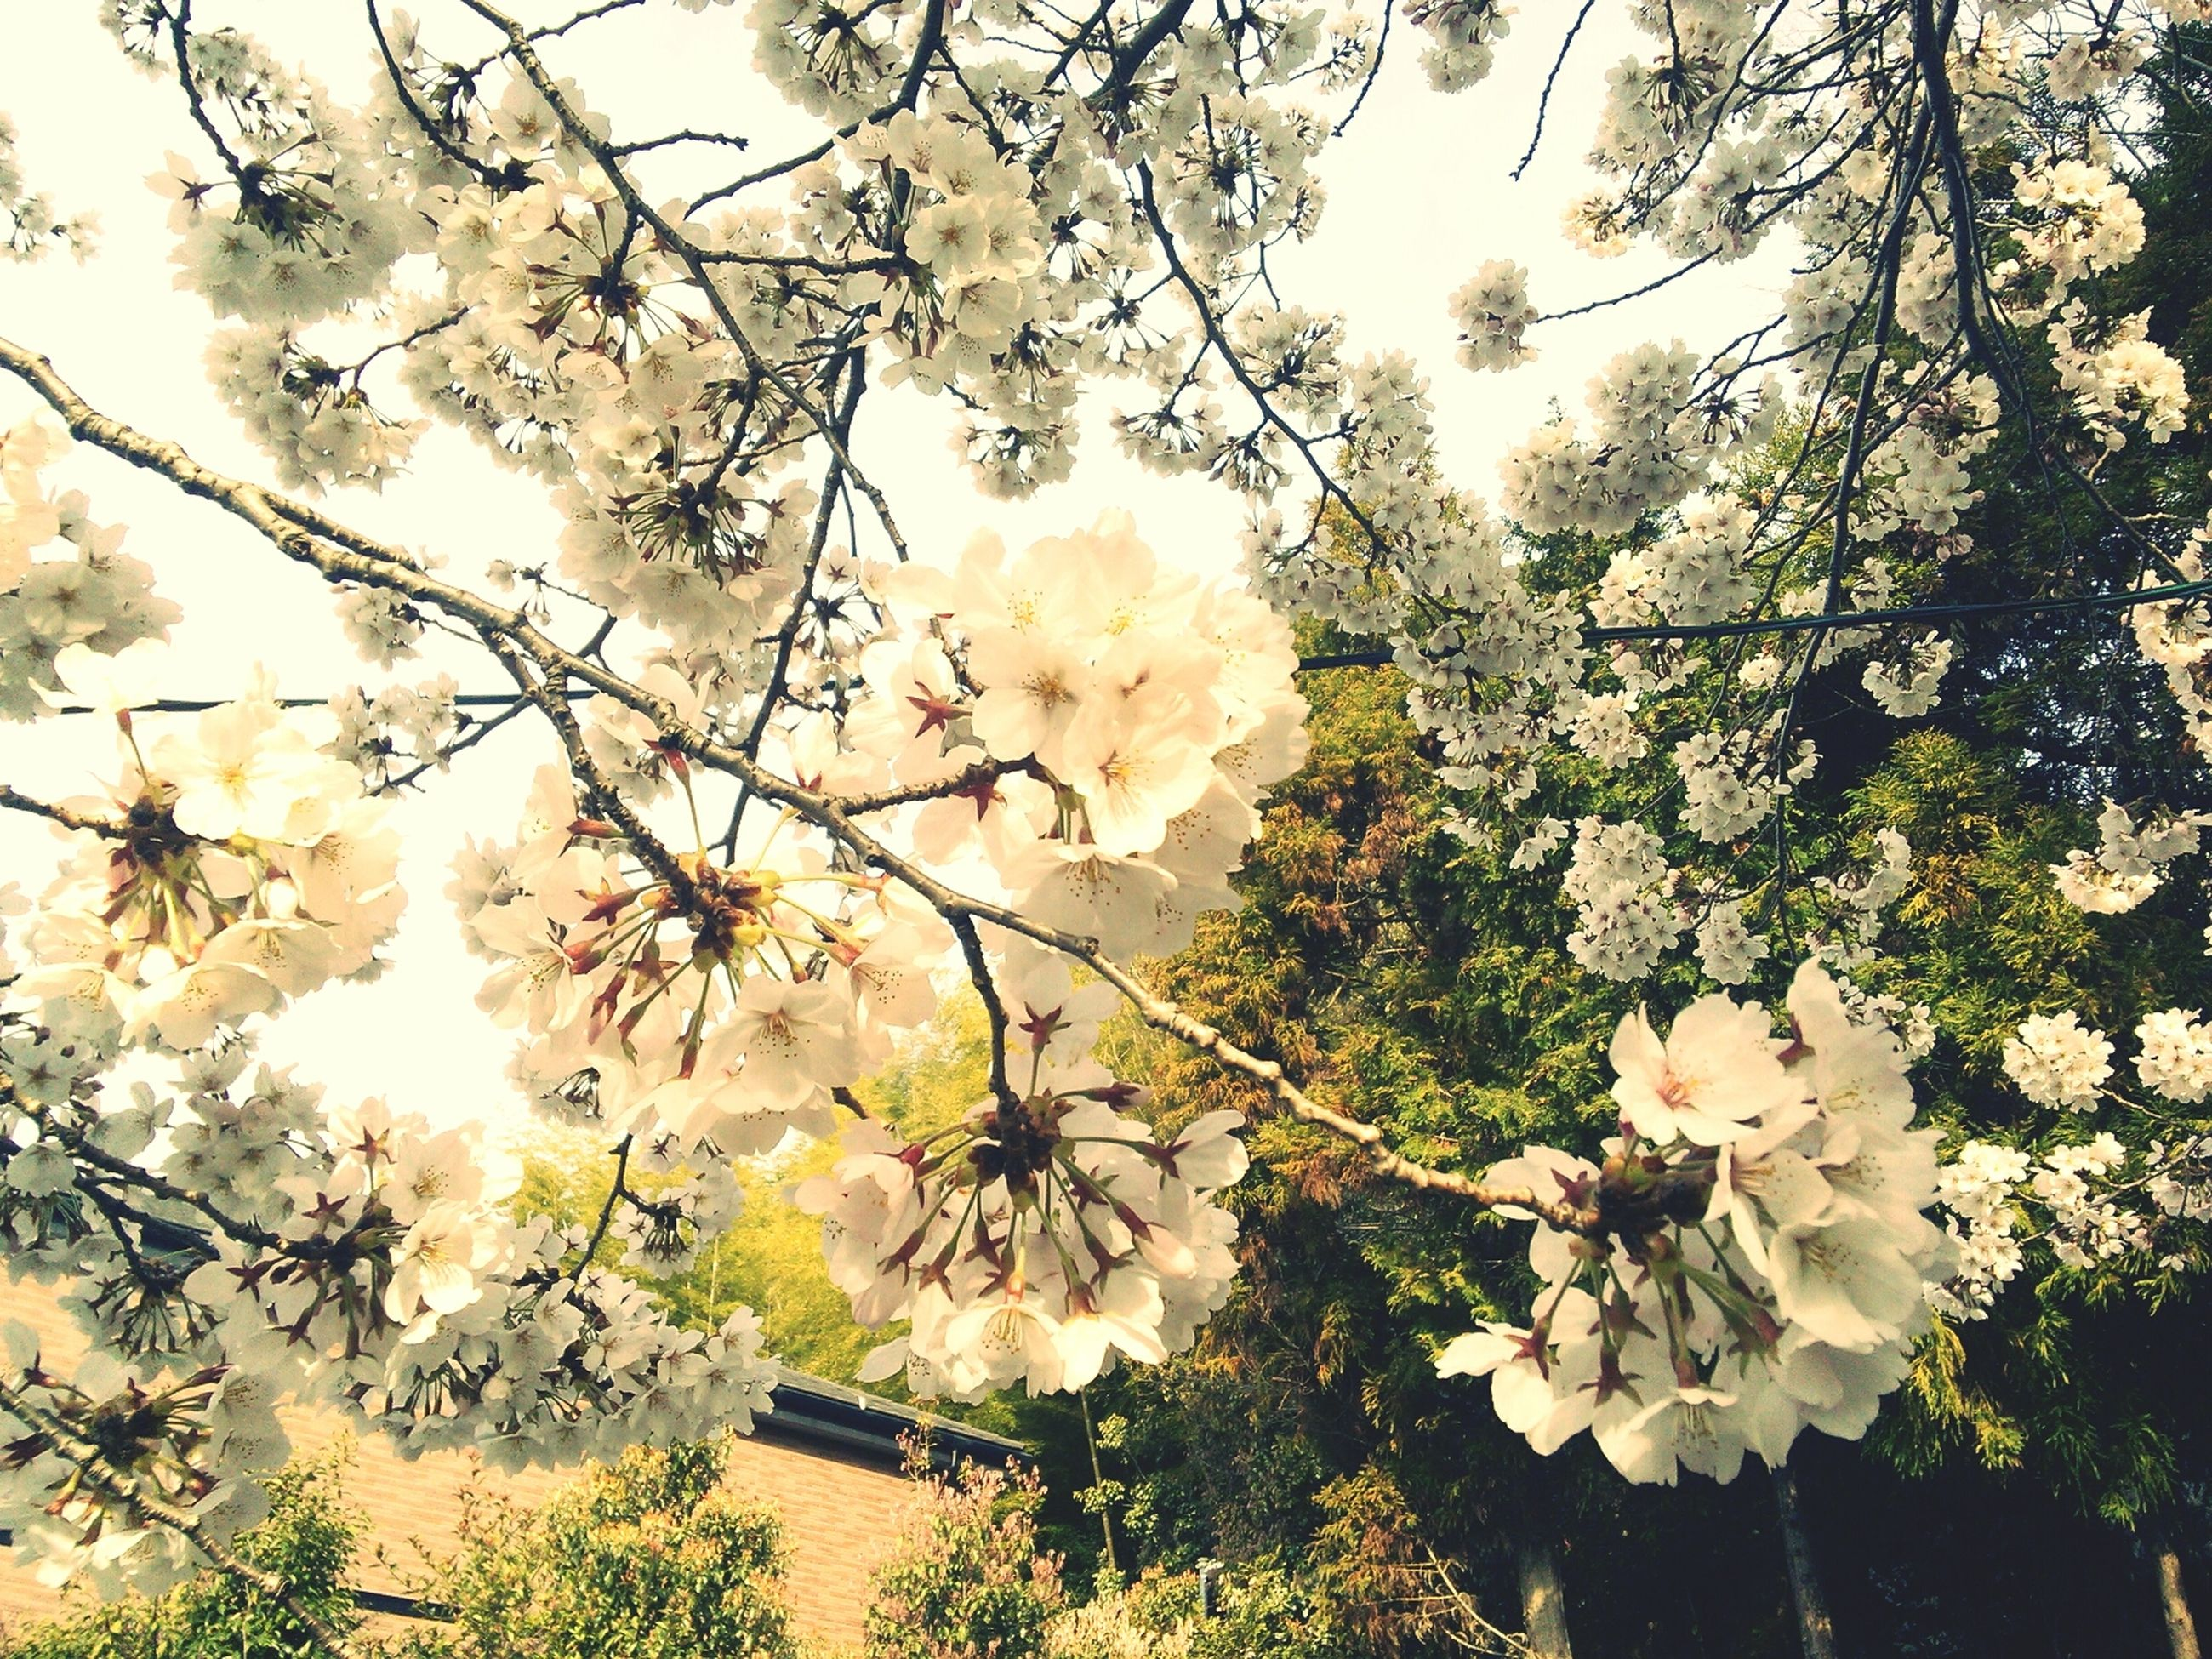 flower, tree, branch, growth, fragility, freshness, nature, beauty in nature, petal, low angle view, blossom, leaf, blooming, sunlight, white color, in bloom, plant, day, outdoors, flower head